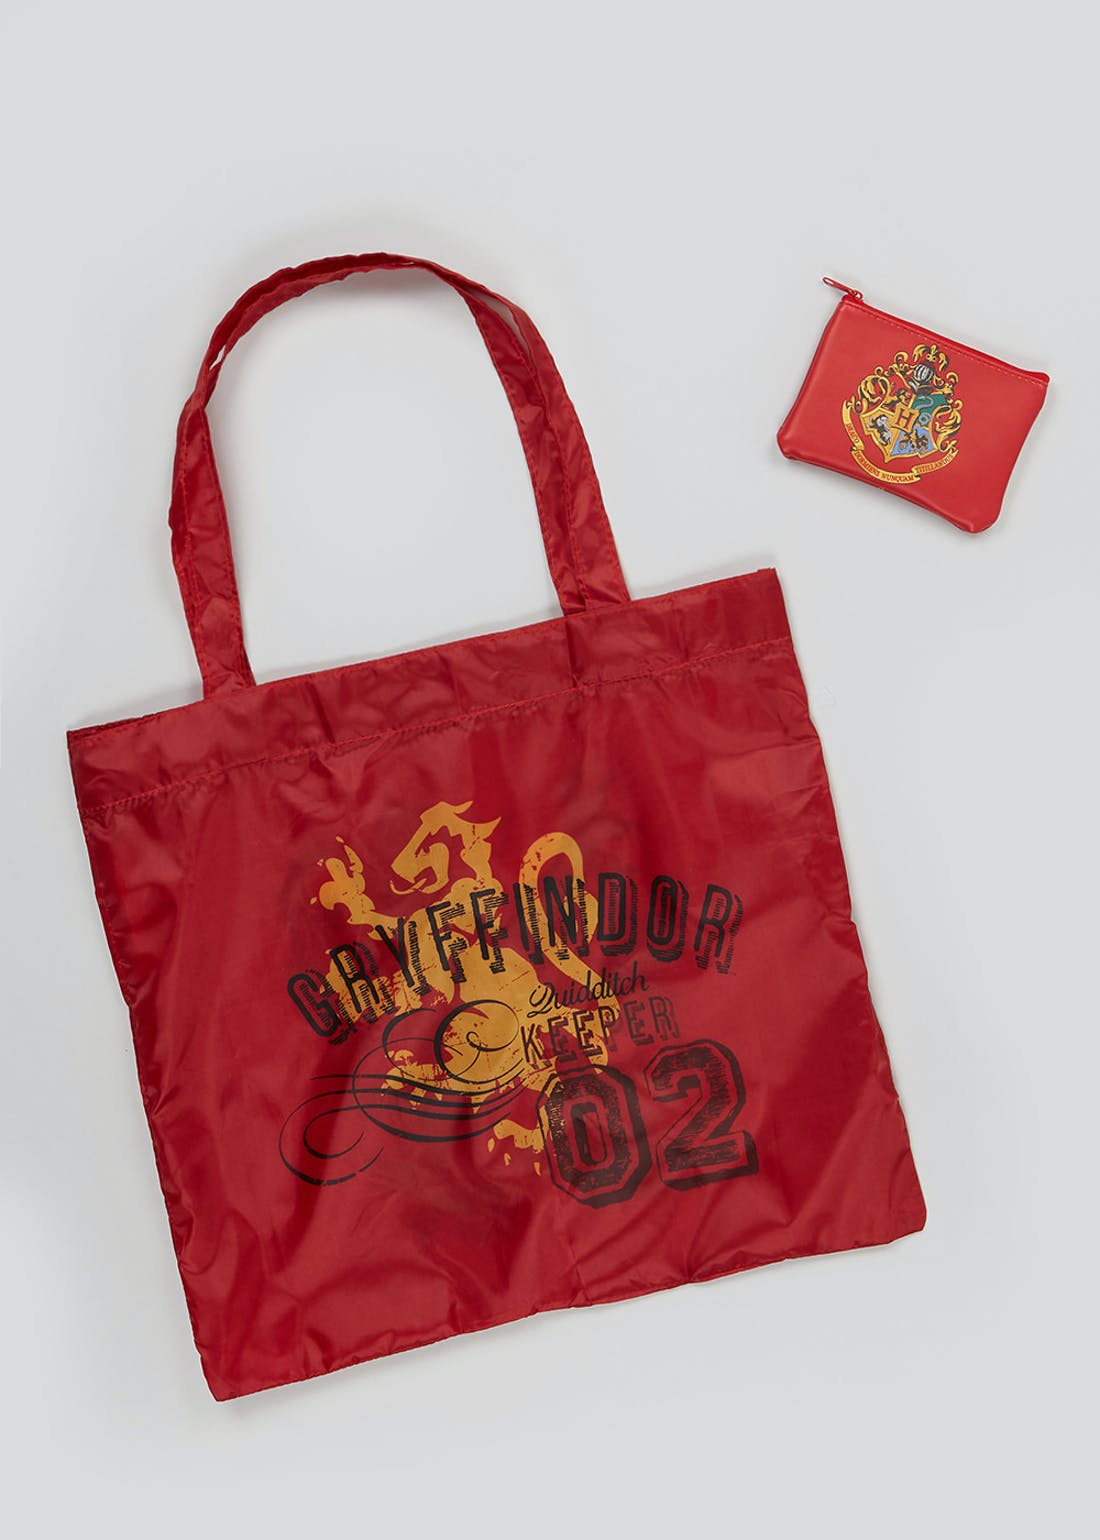 Harry Potter Shopper Bag with Purse